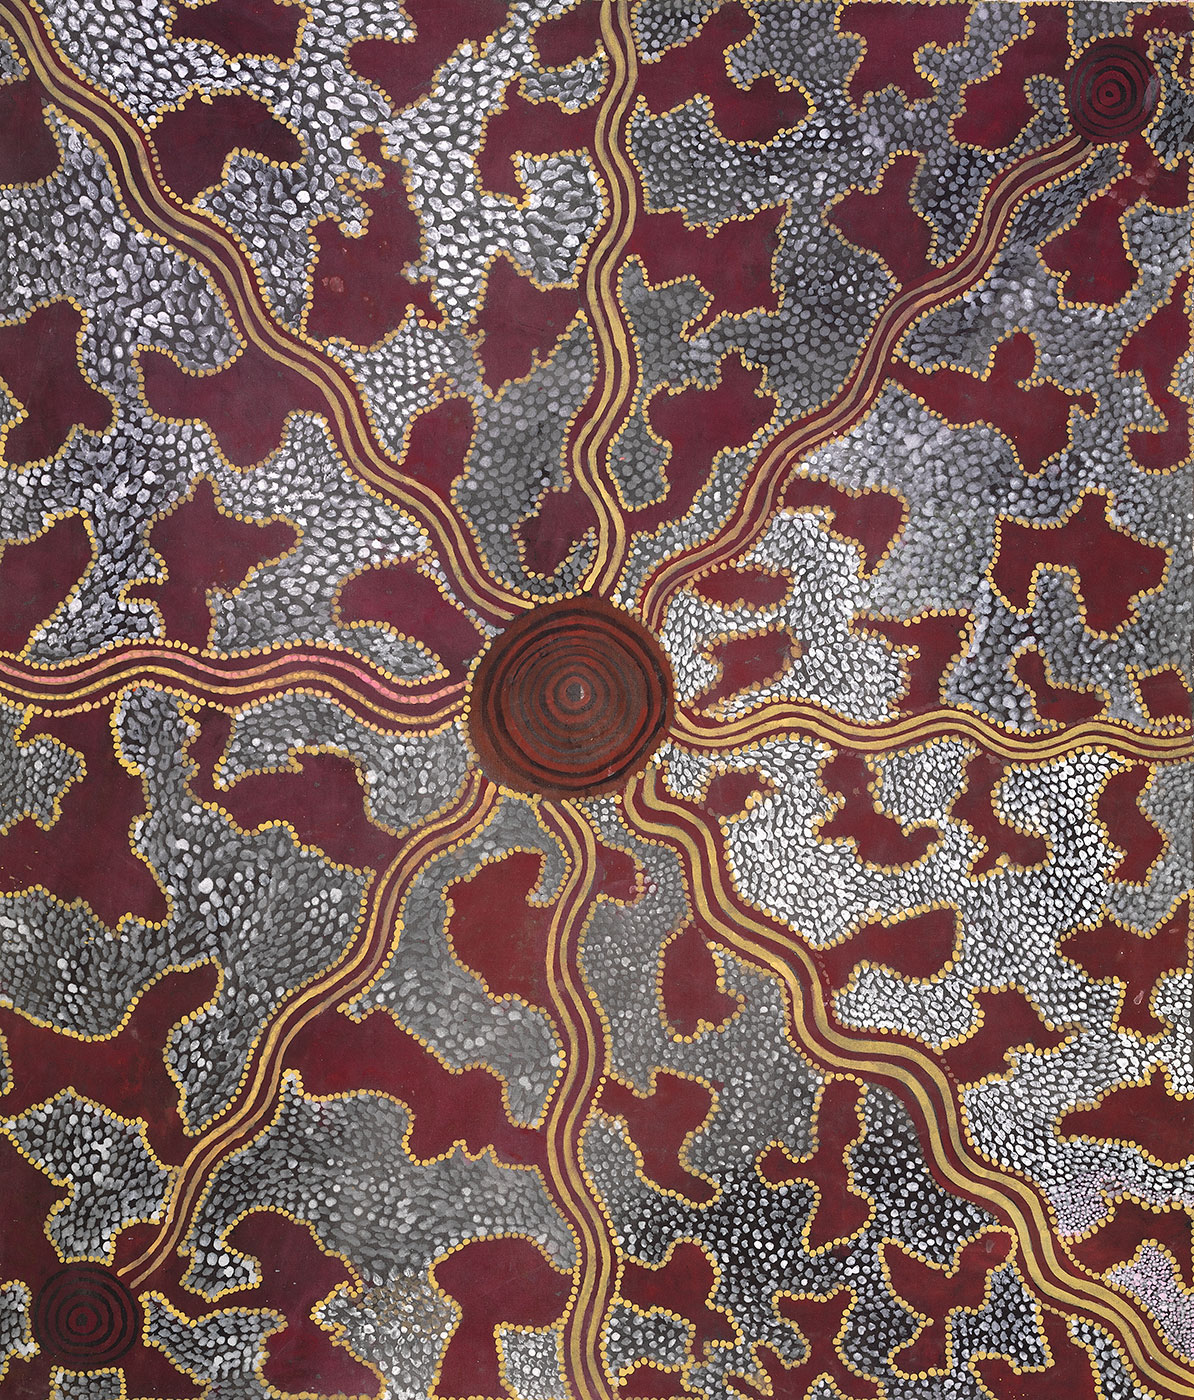 Honey Ant Hunt 1975 by Tim Leura Tjapaltjarri. - click to view larger image